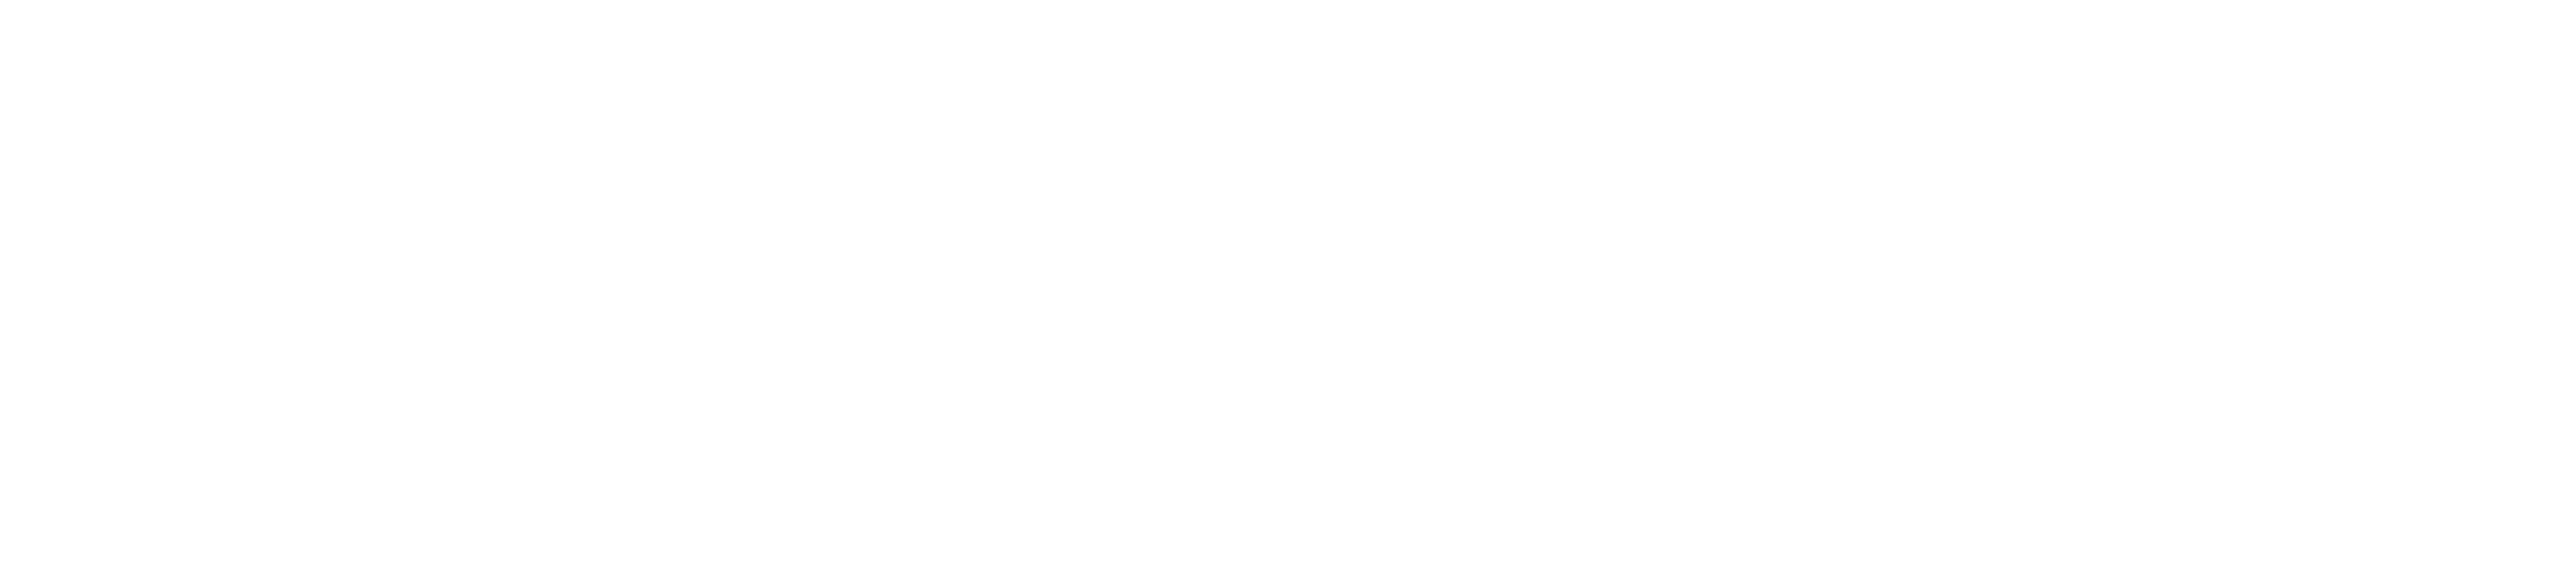 Tax-Pro Accounting and Financial Services